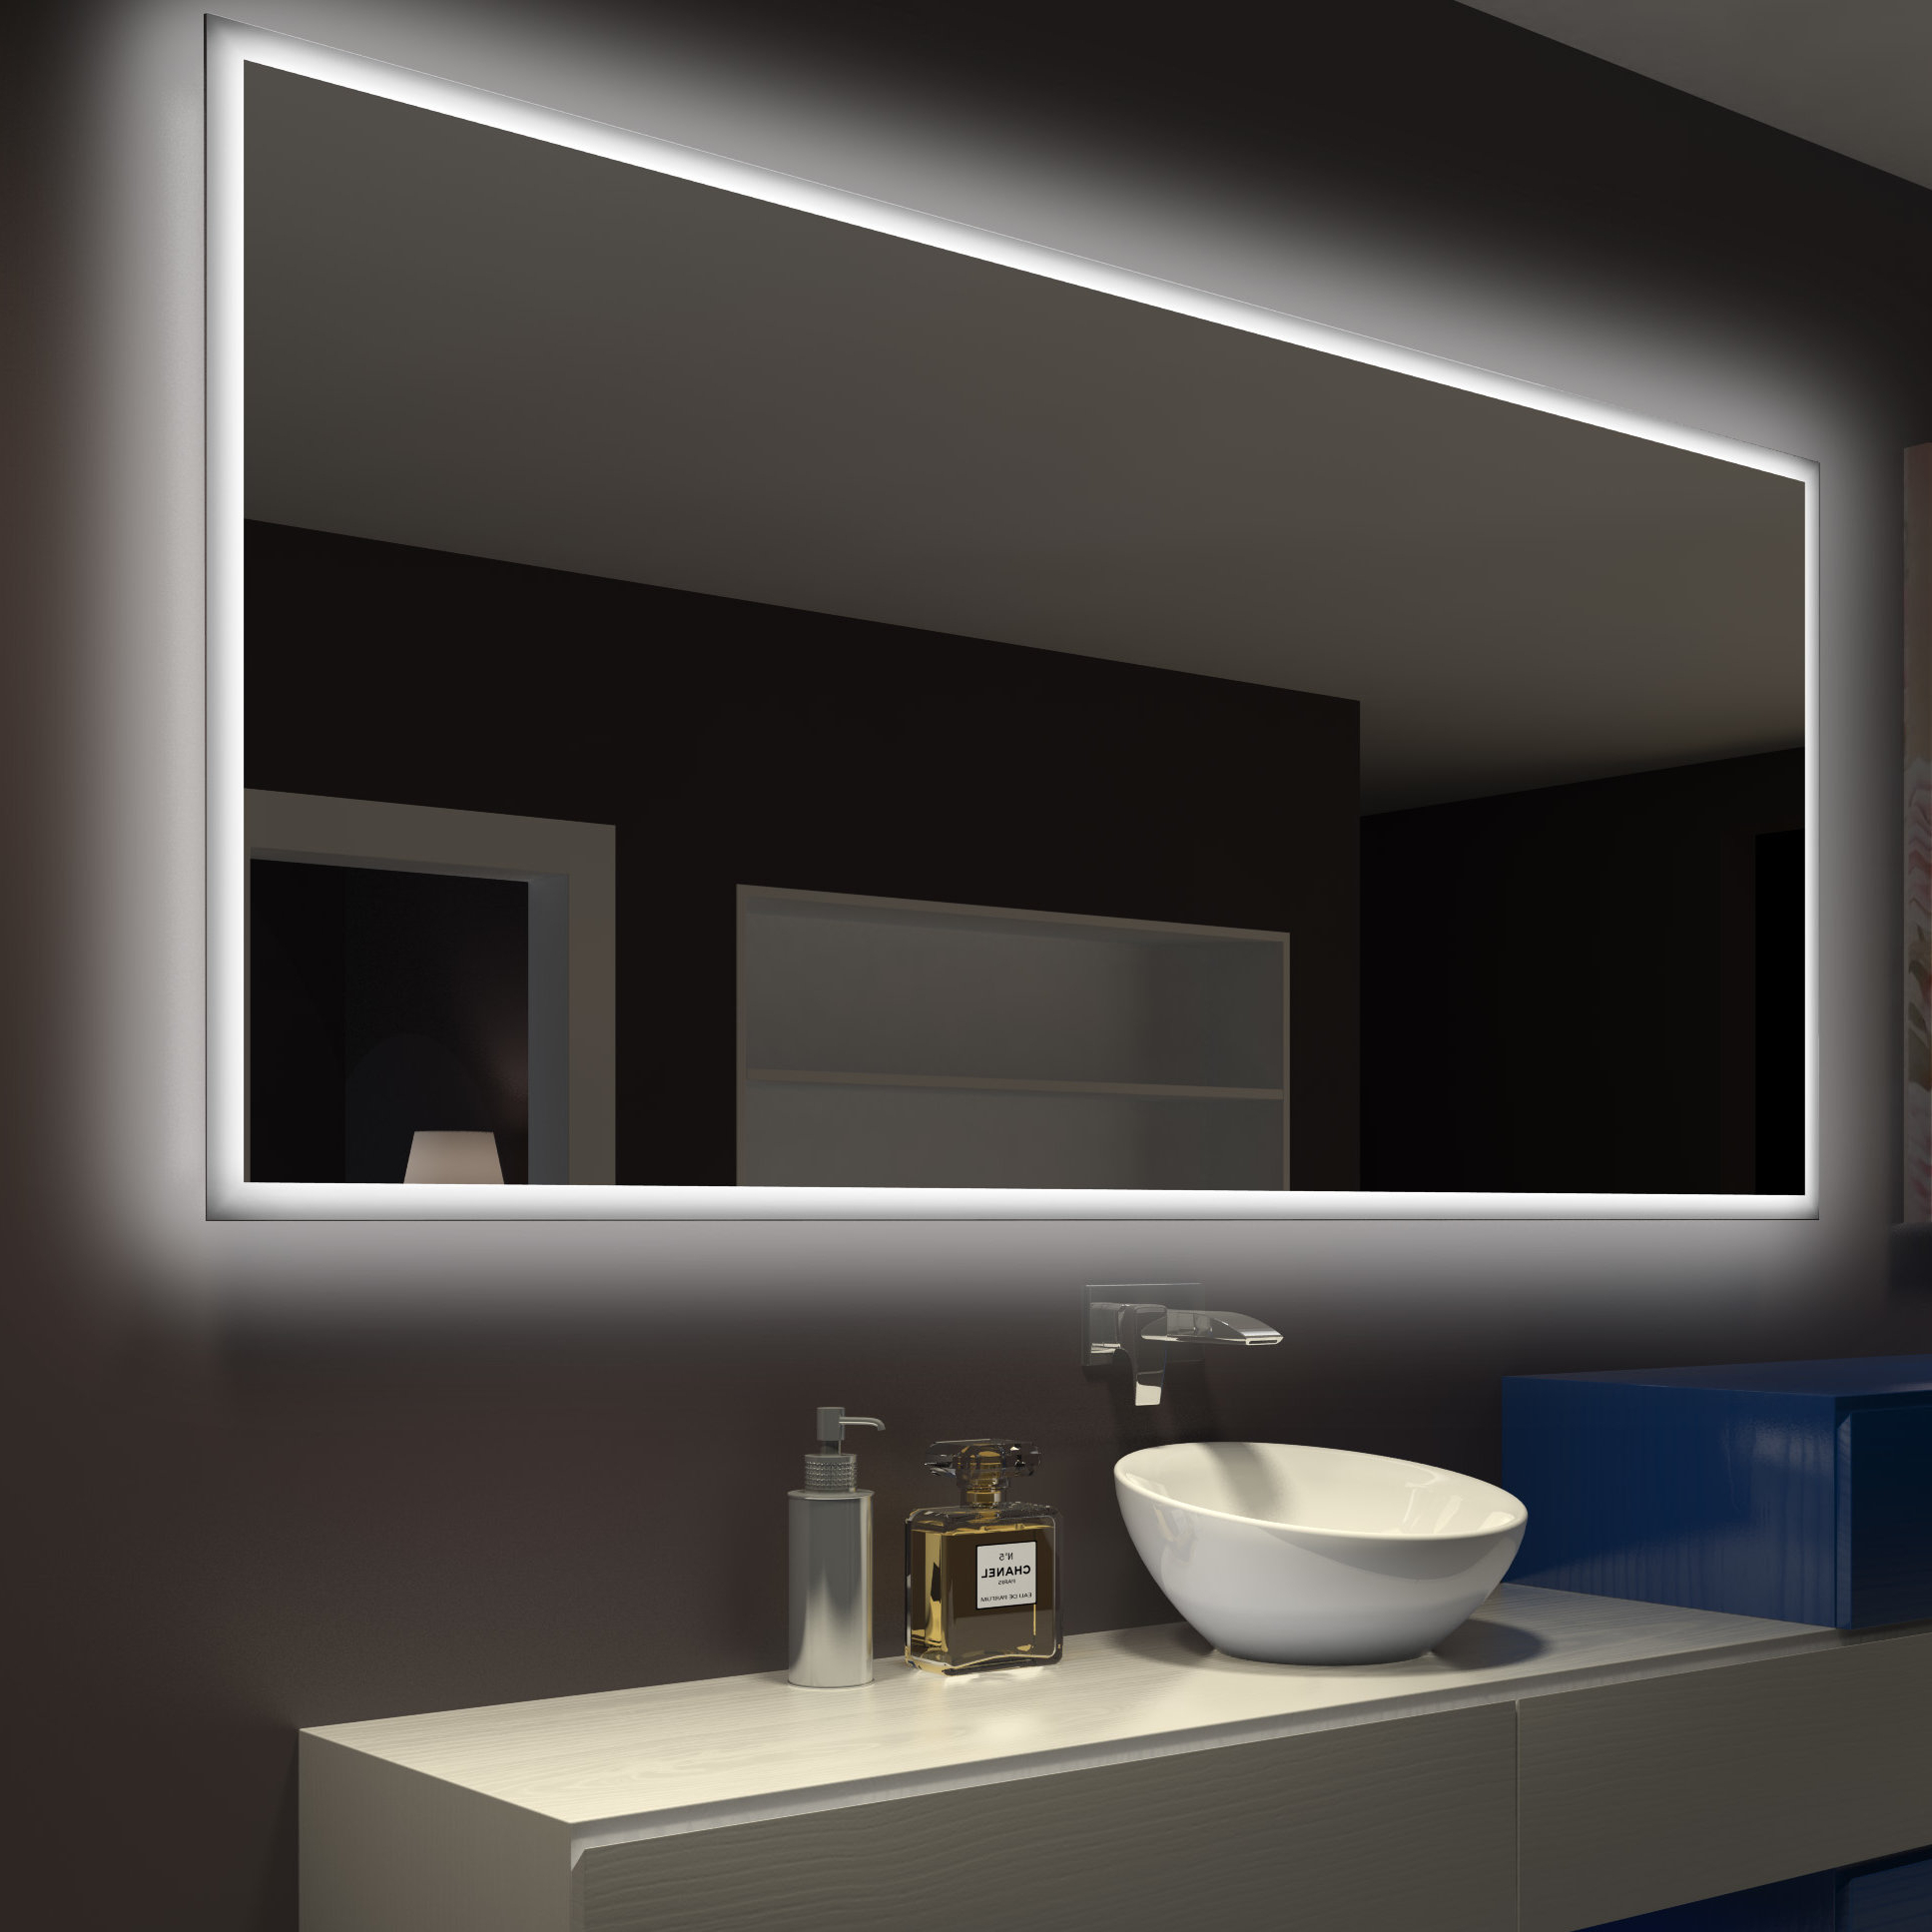 Rectangle Backlit Bathroom/vanity Wall Mirror Intended For Most Popular Bathroom Vanity Wall Mirrors (View 5 of 20)